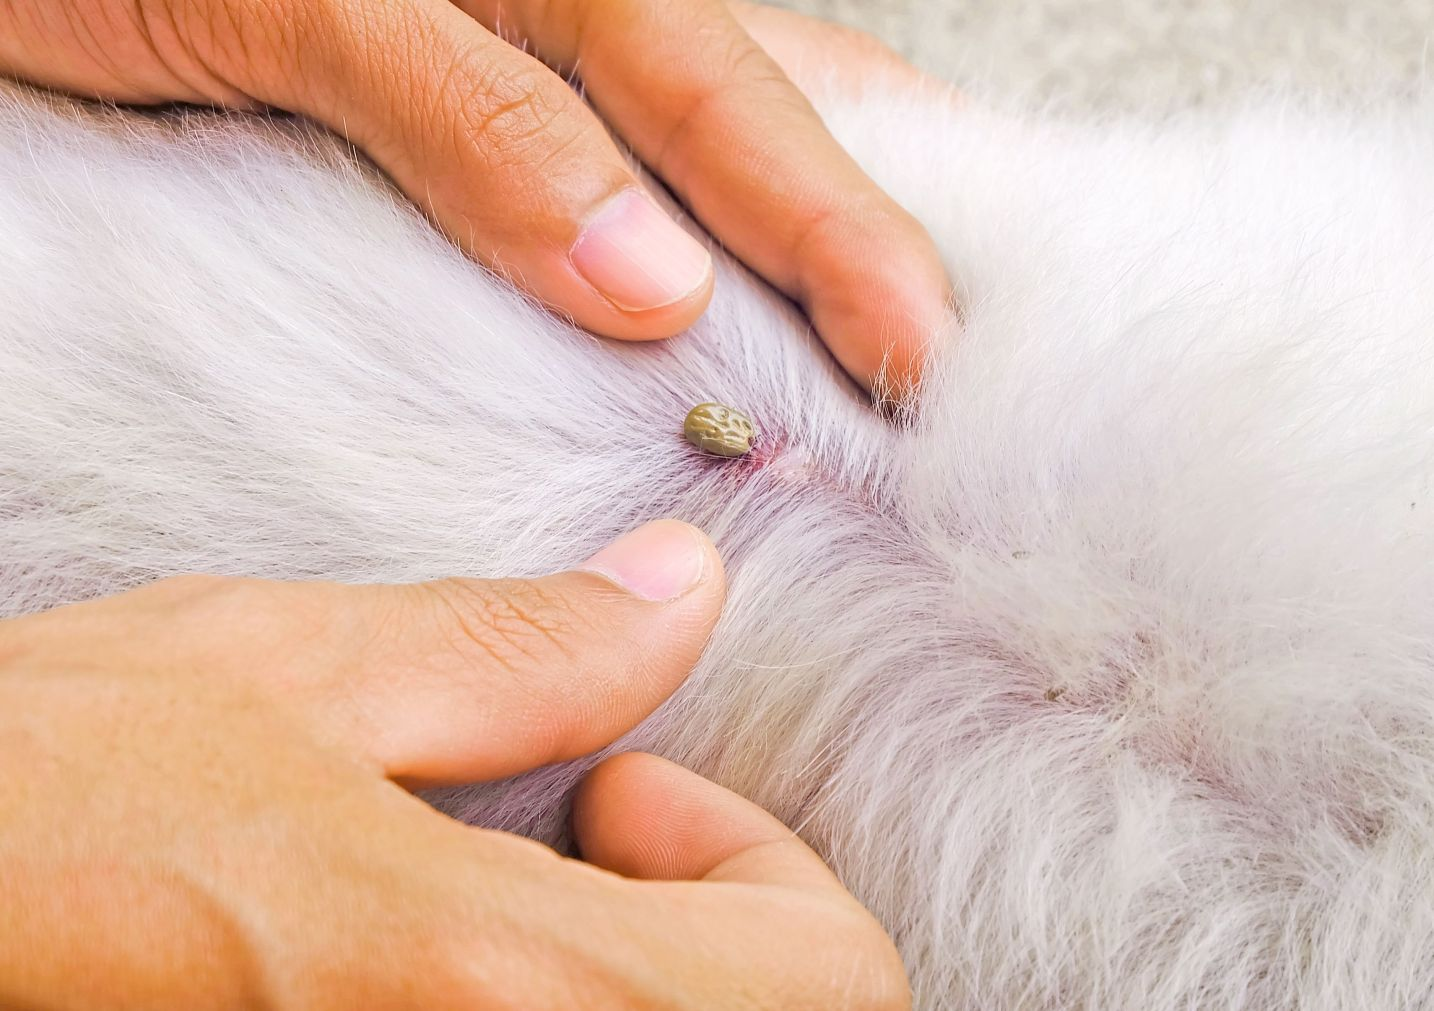 ticks causing lyme diseases, which adversely affect the dog health